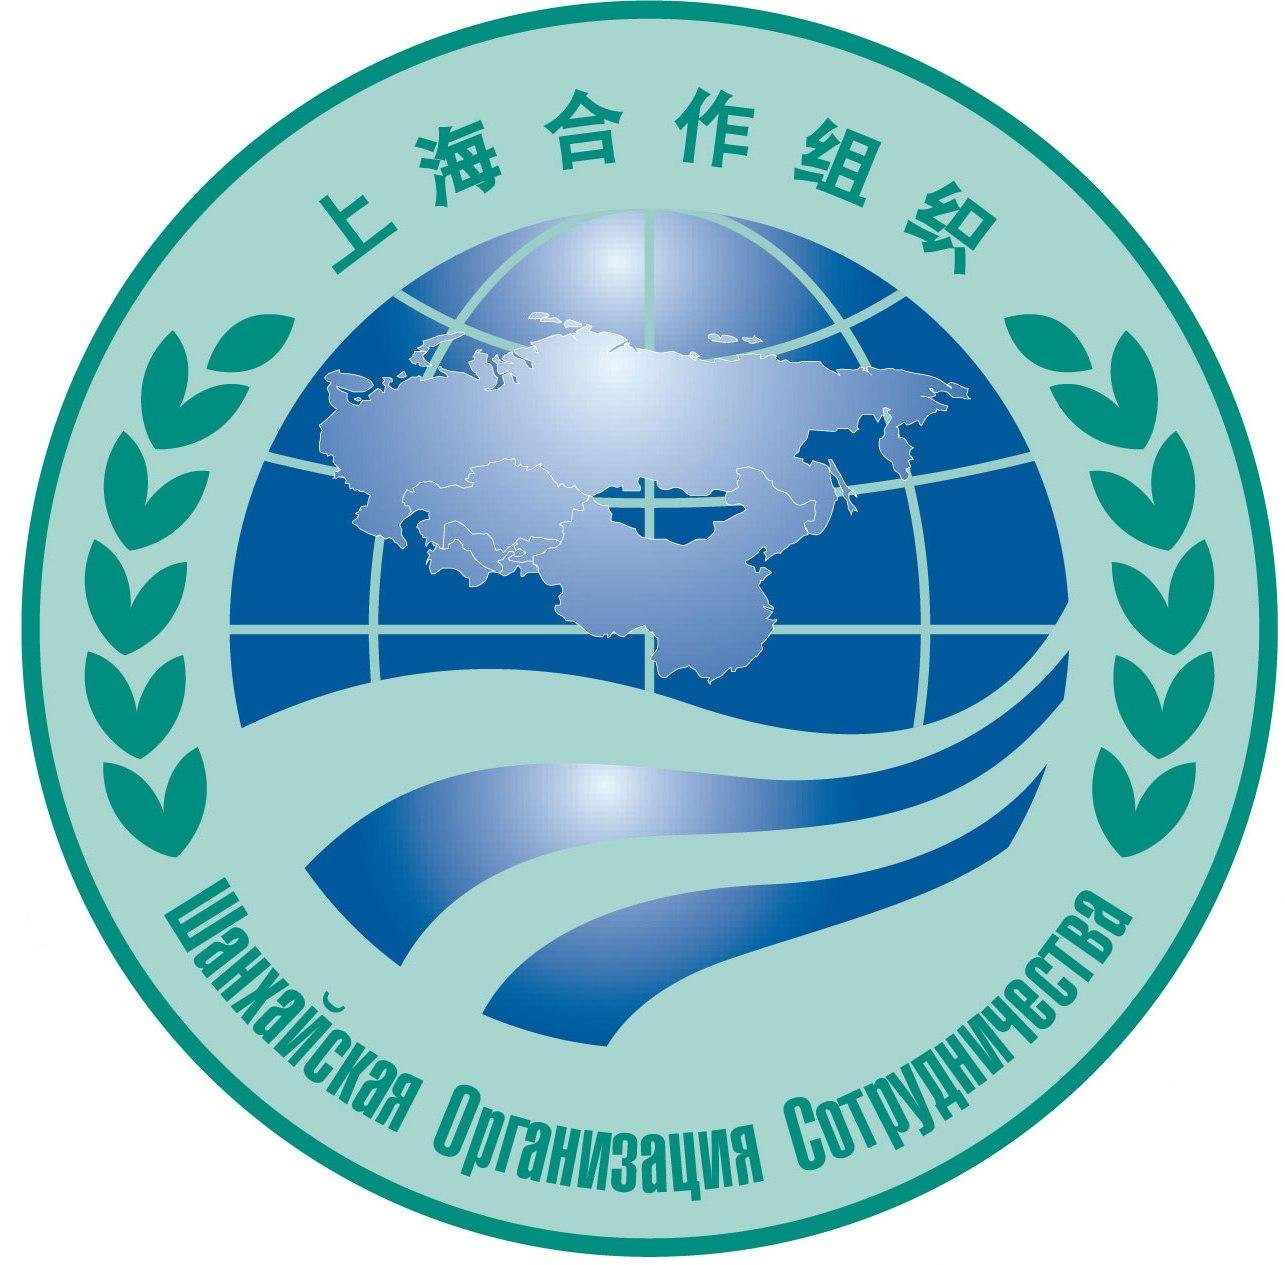 thesis on shanghai cooperation organization Charting a new silk road the shanghai cooperation organization and russian foreign policy by benjamin fontaine gonzalez bs, university of oregon, 2001.